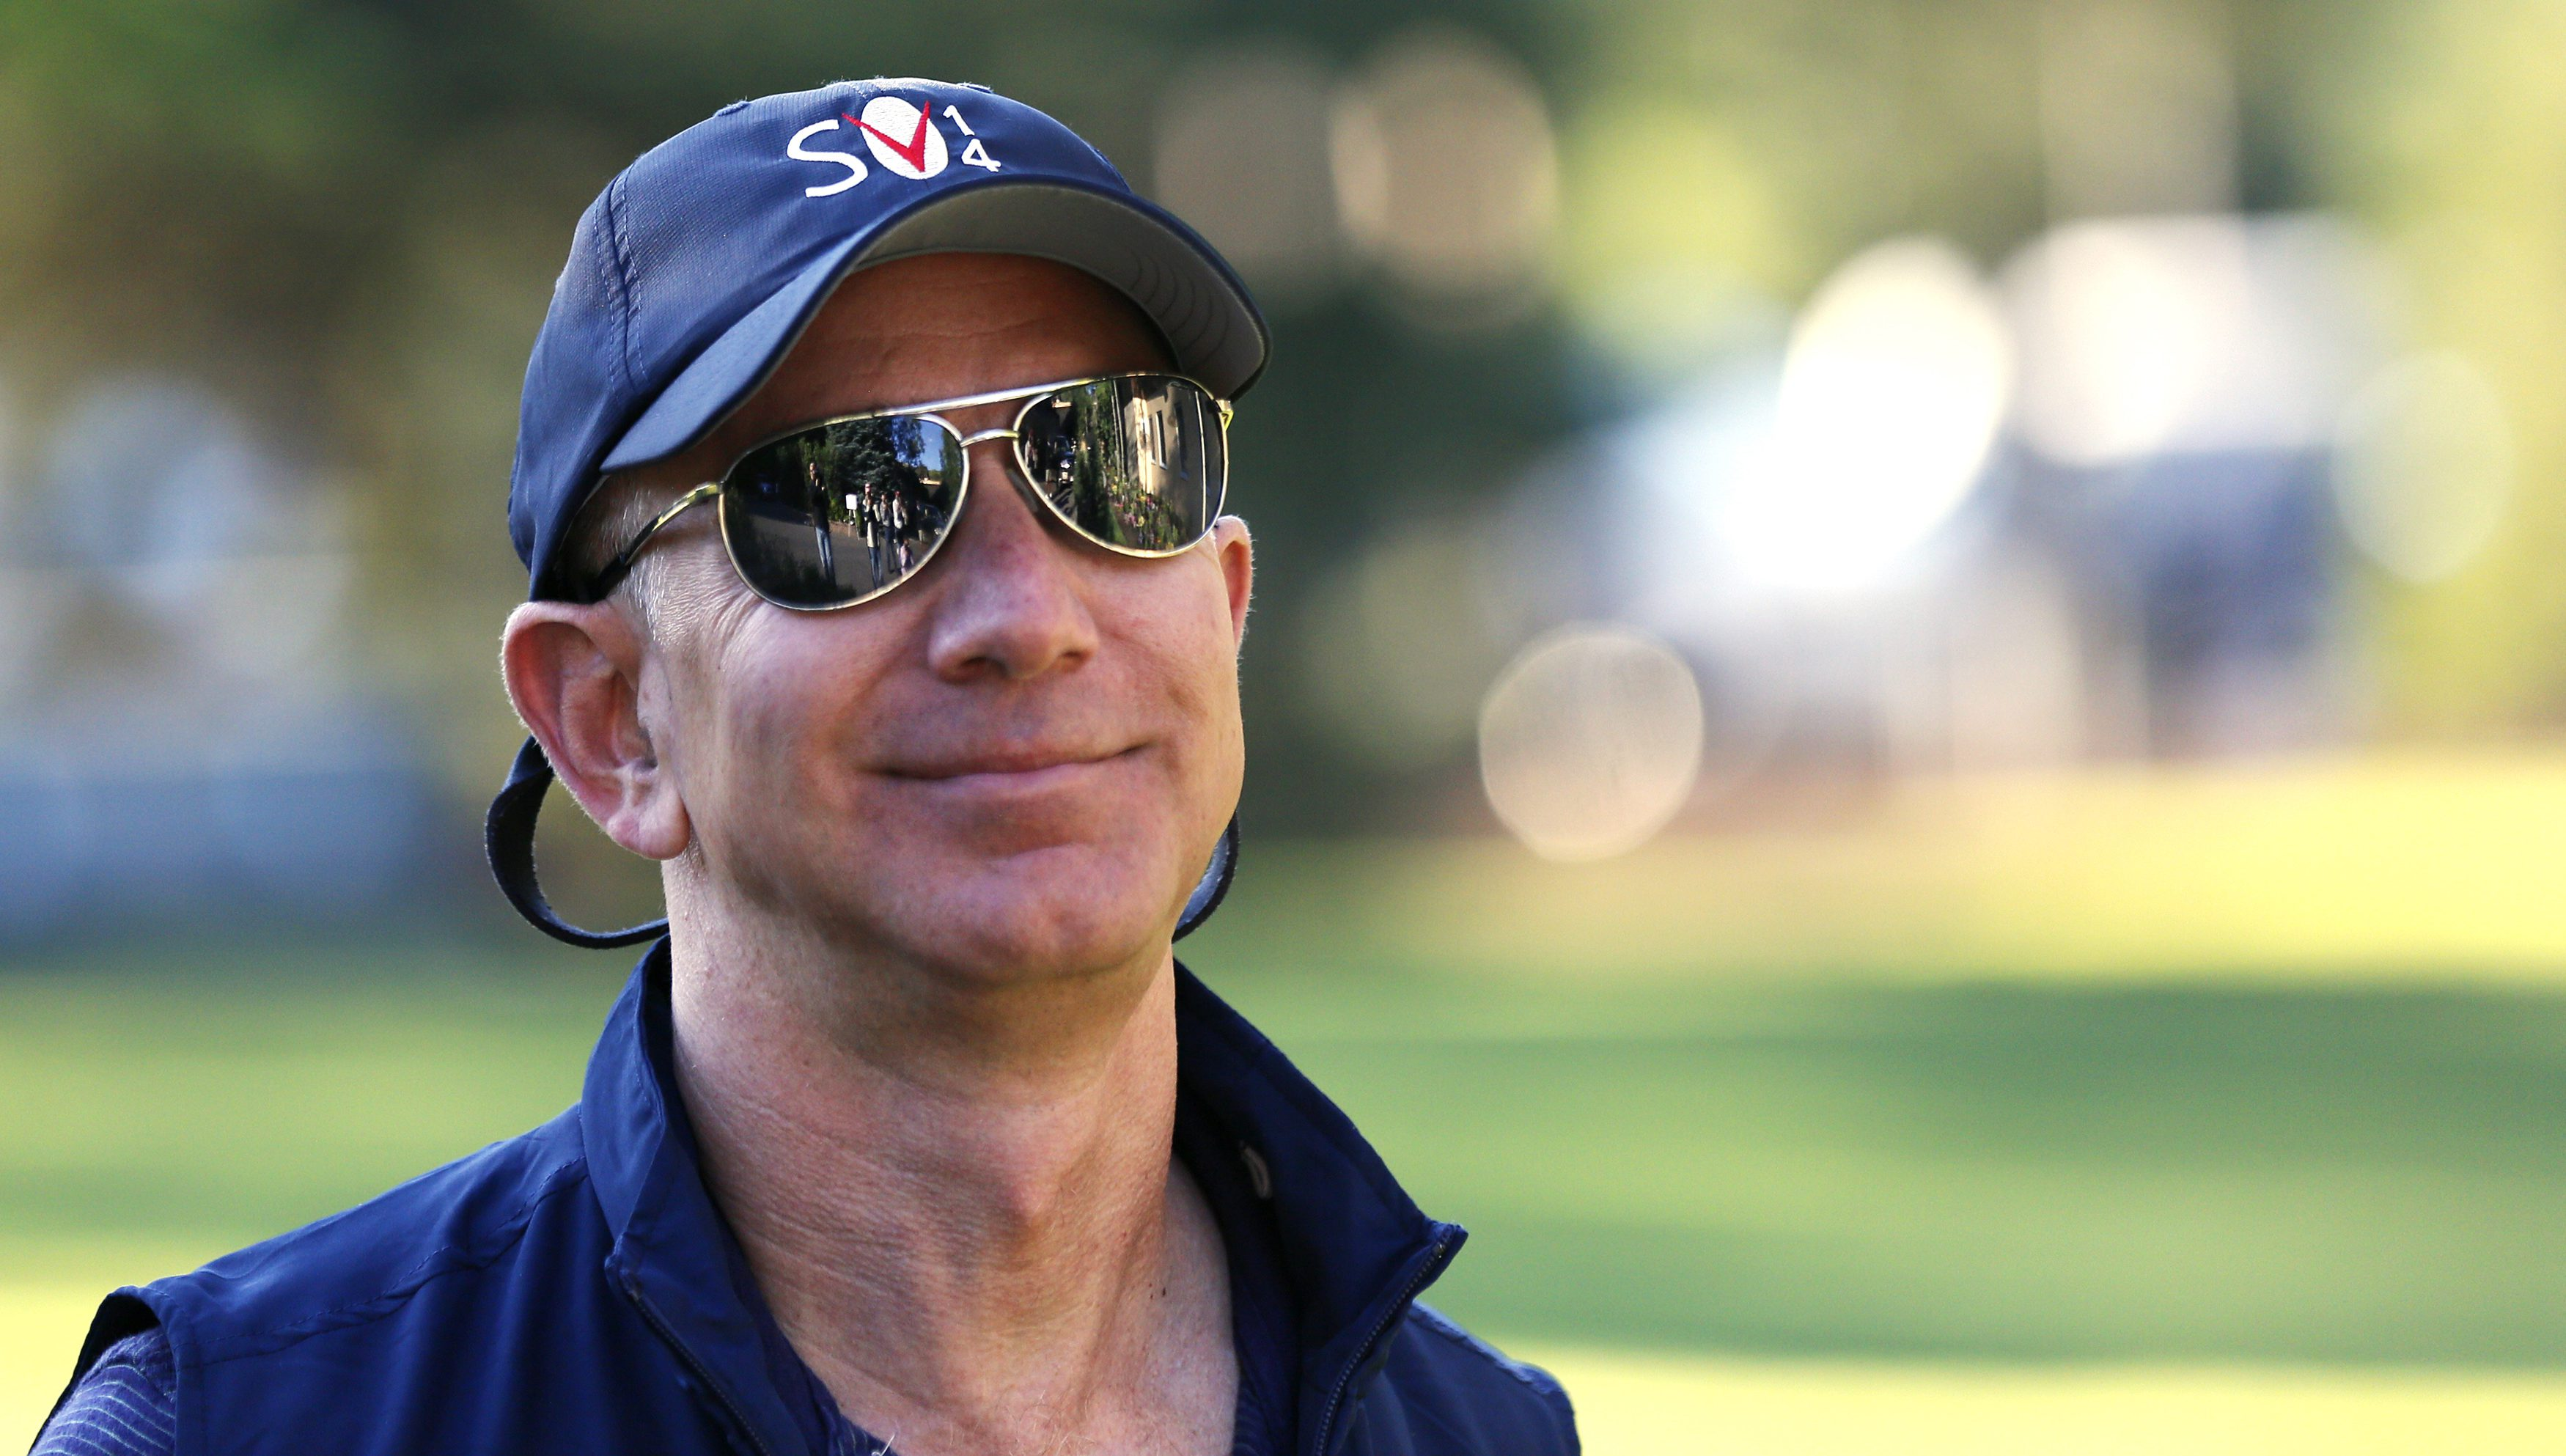 Jeff Bezos, founder and CEO of Amazon.com, arrives for the third day of the Allen and Co. media conference in Sun Valley, Idaho July 11, 2014. Media and technology CEOs and investors get together every year at the Allen & Co conference in Sun Valley for a week of mingling and deal-making at the upscale Idaho mountain resort. REUTERS/Rick Wilking (UNITED STATES - Tags: BUSINESS MEDIA SCIENCE TECHNOLOGY) - RTR3Y7OD